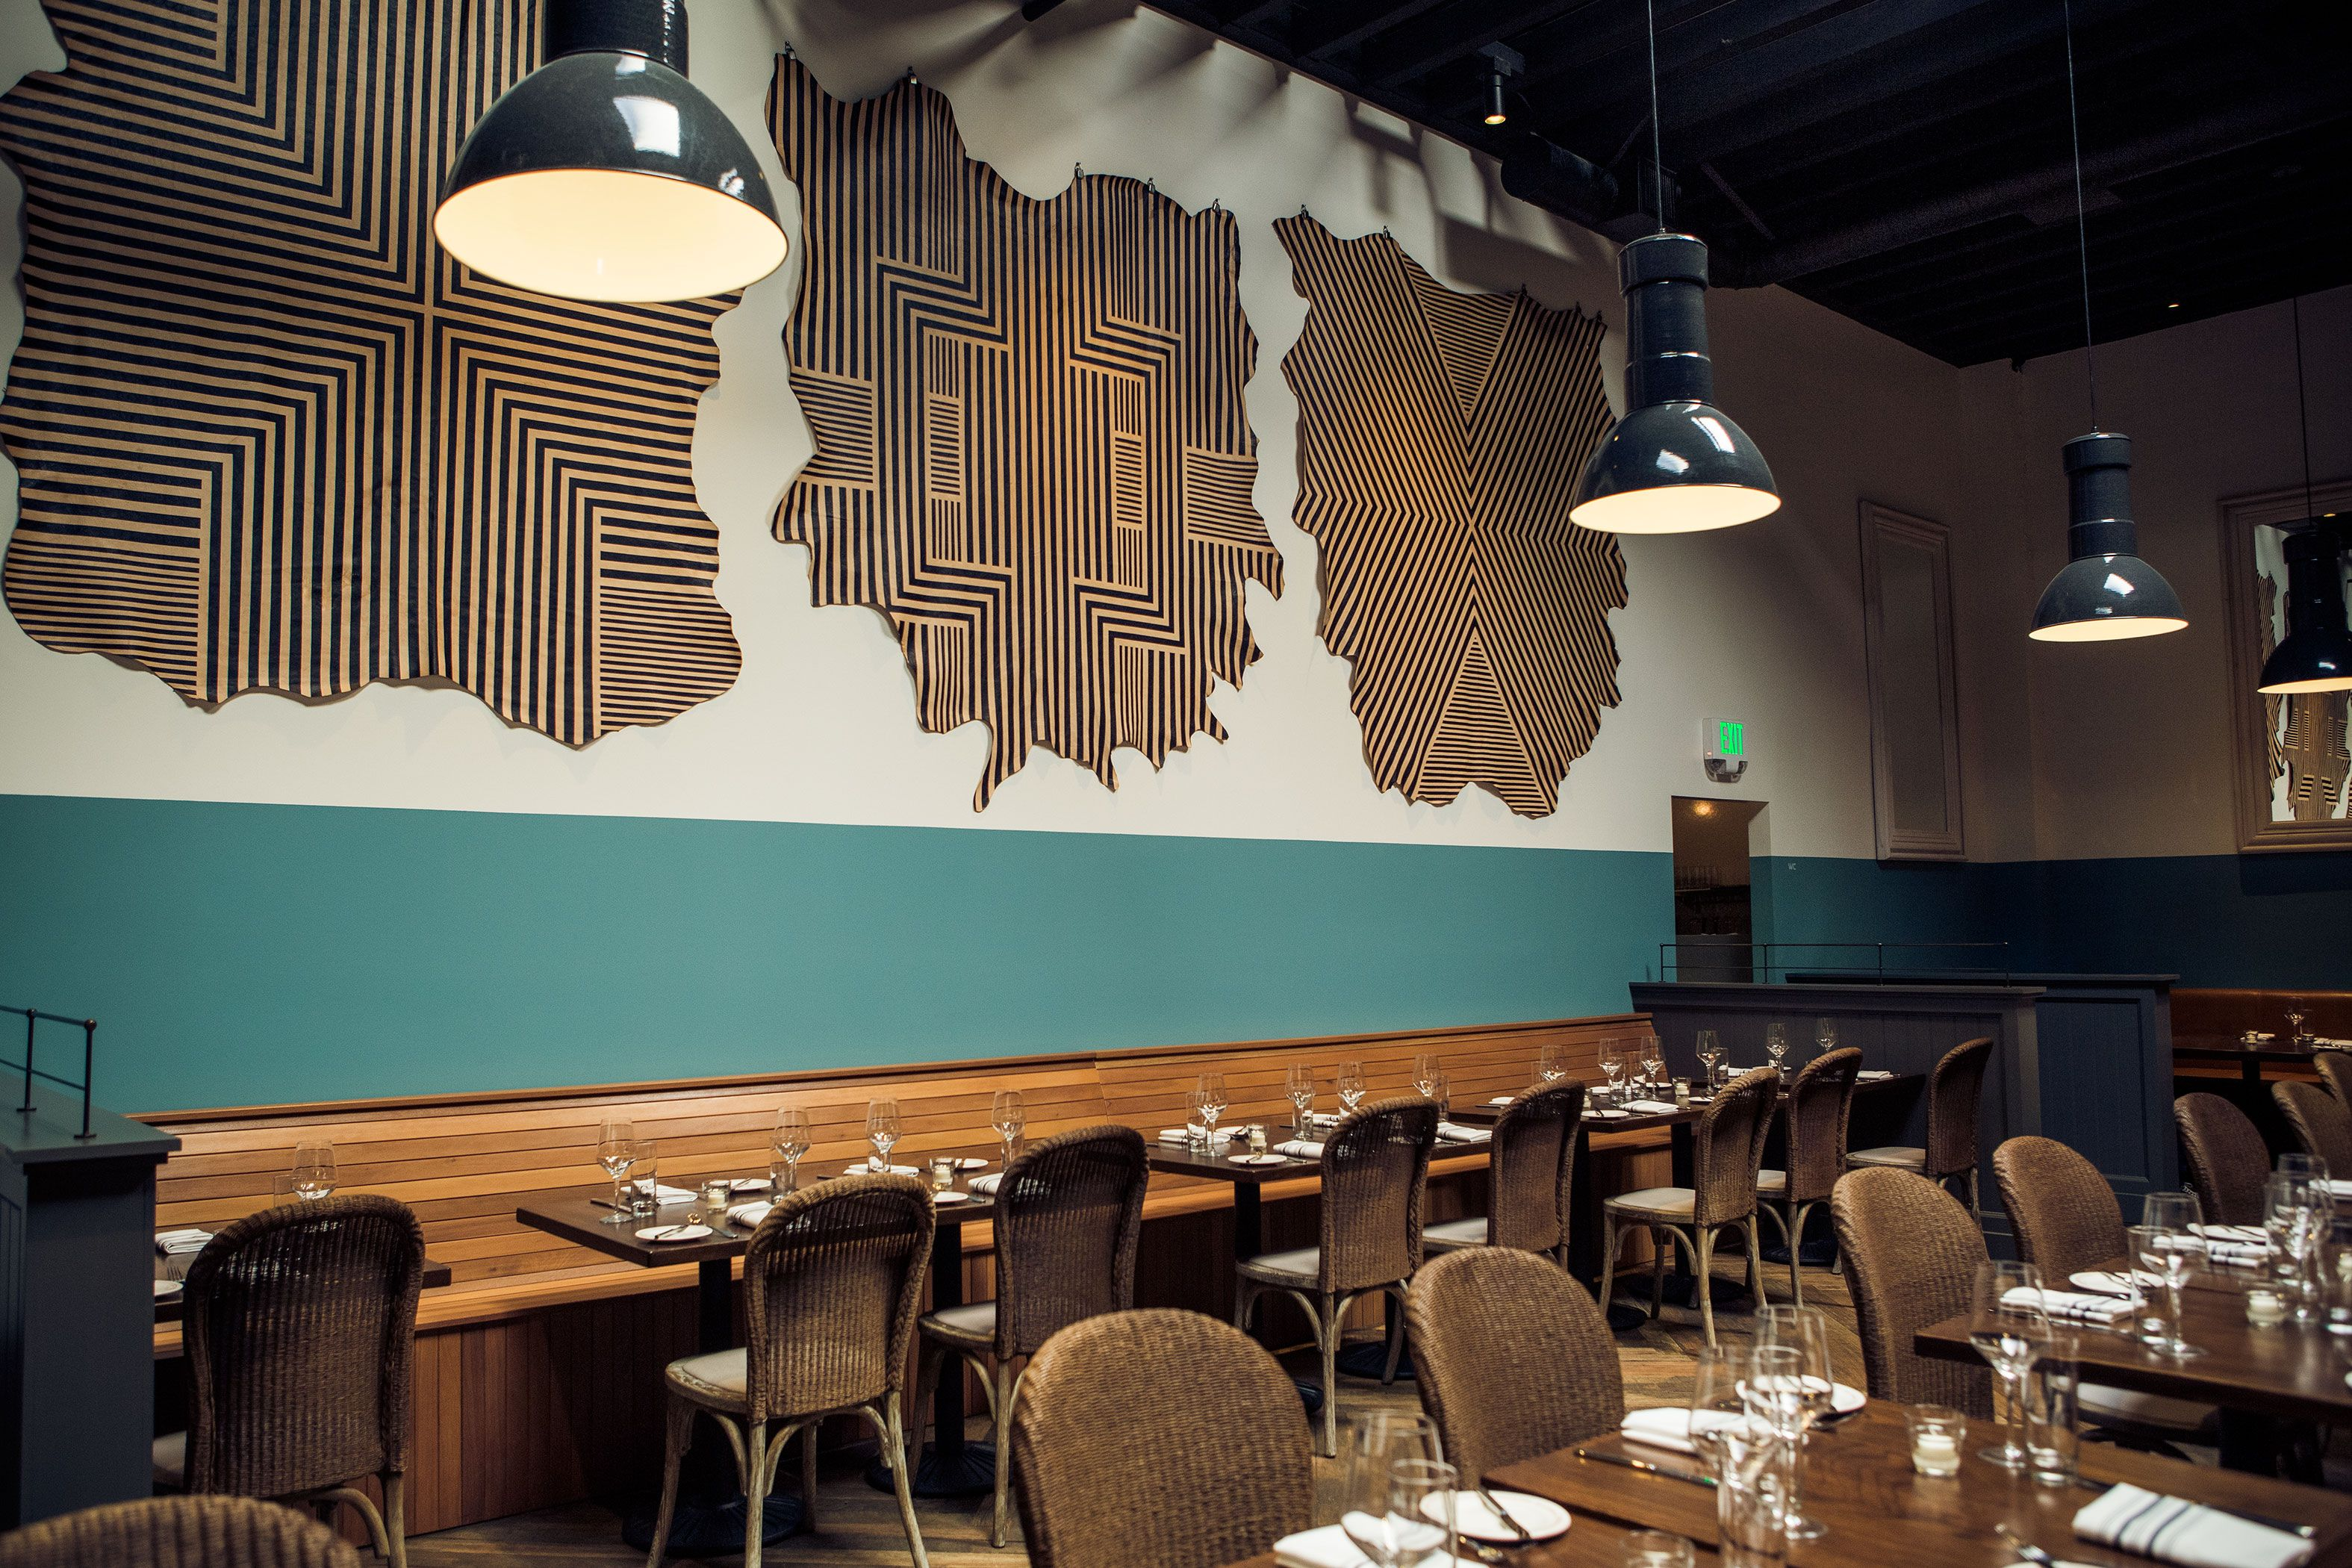 belcampo santa monica features both an 86 seat restaurant serving